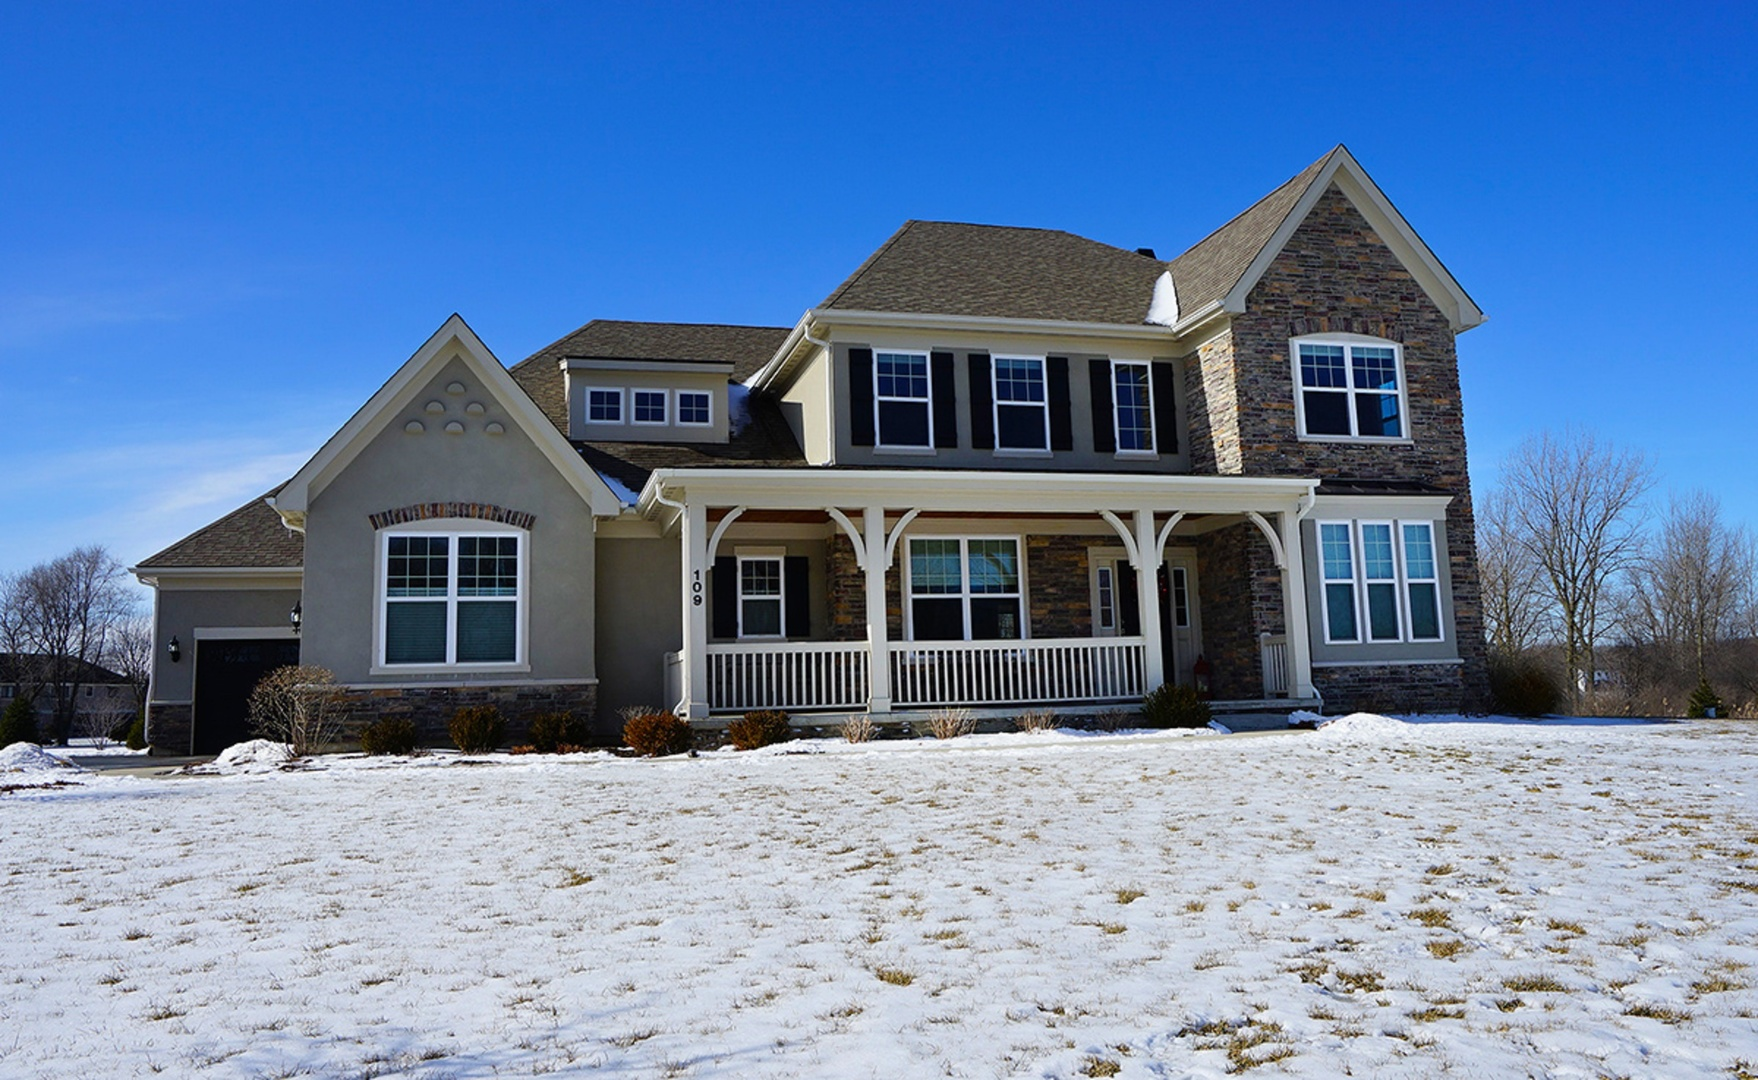 109 Equestrian Way, Hawthorn Woods, Illinois 60047